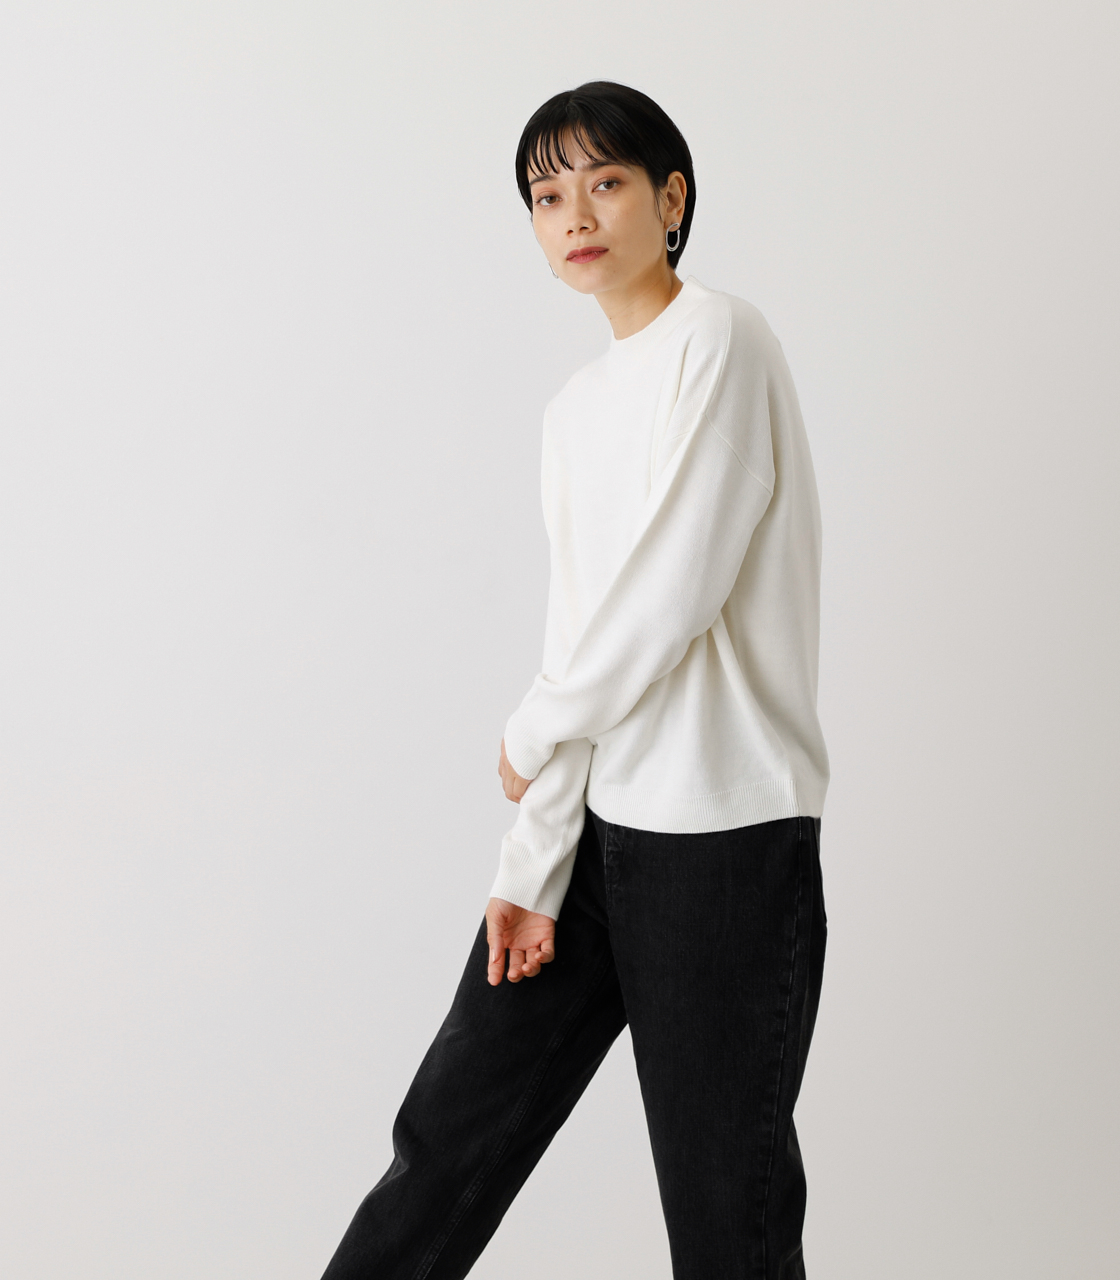 NUDIE H/N KNIT TOPS/ヌーディーハイネックニットトップス【MOOK53掲載 90022】 詳細画像 O/WHT 3